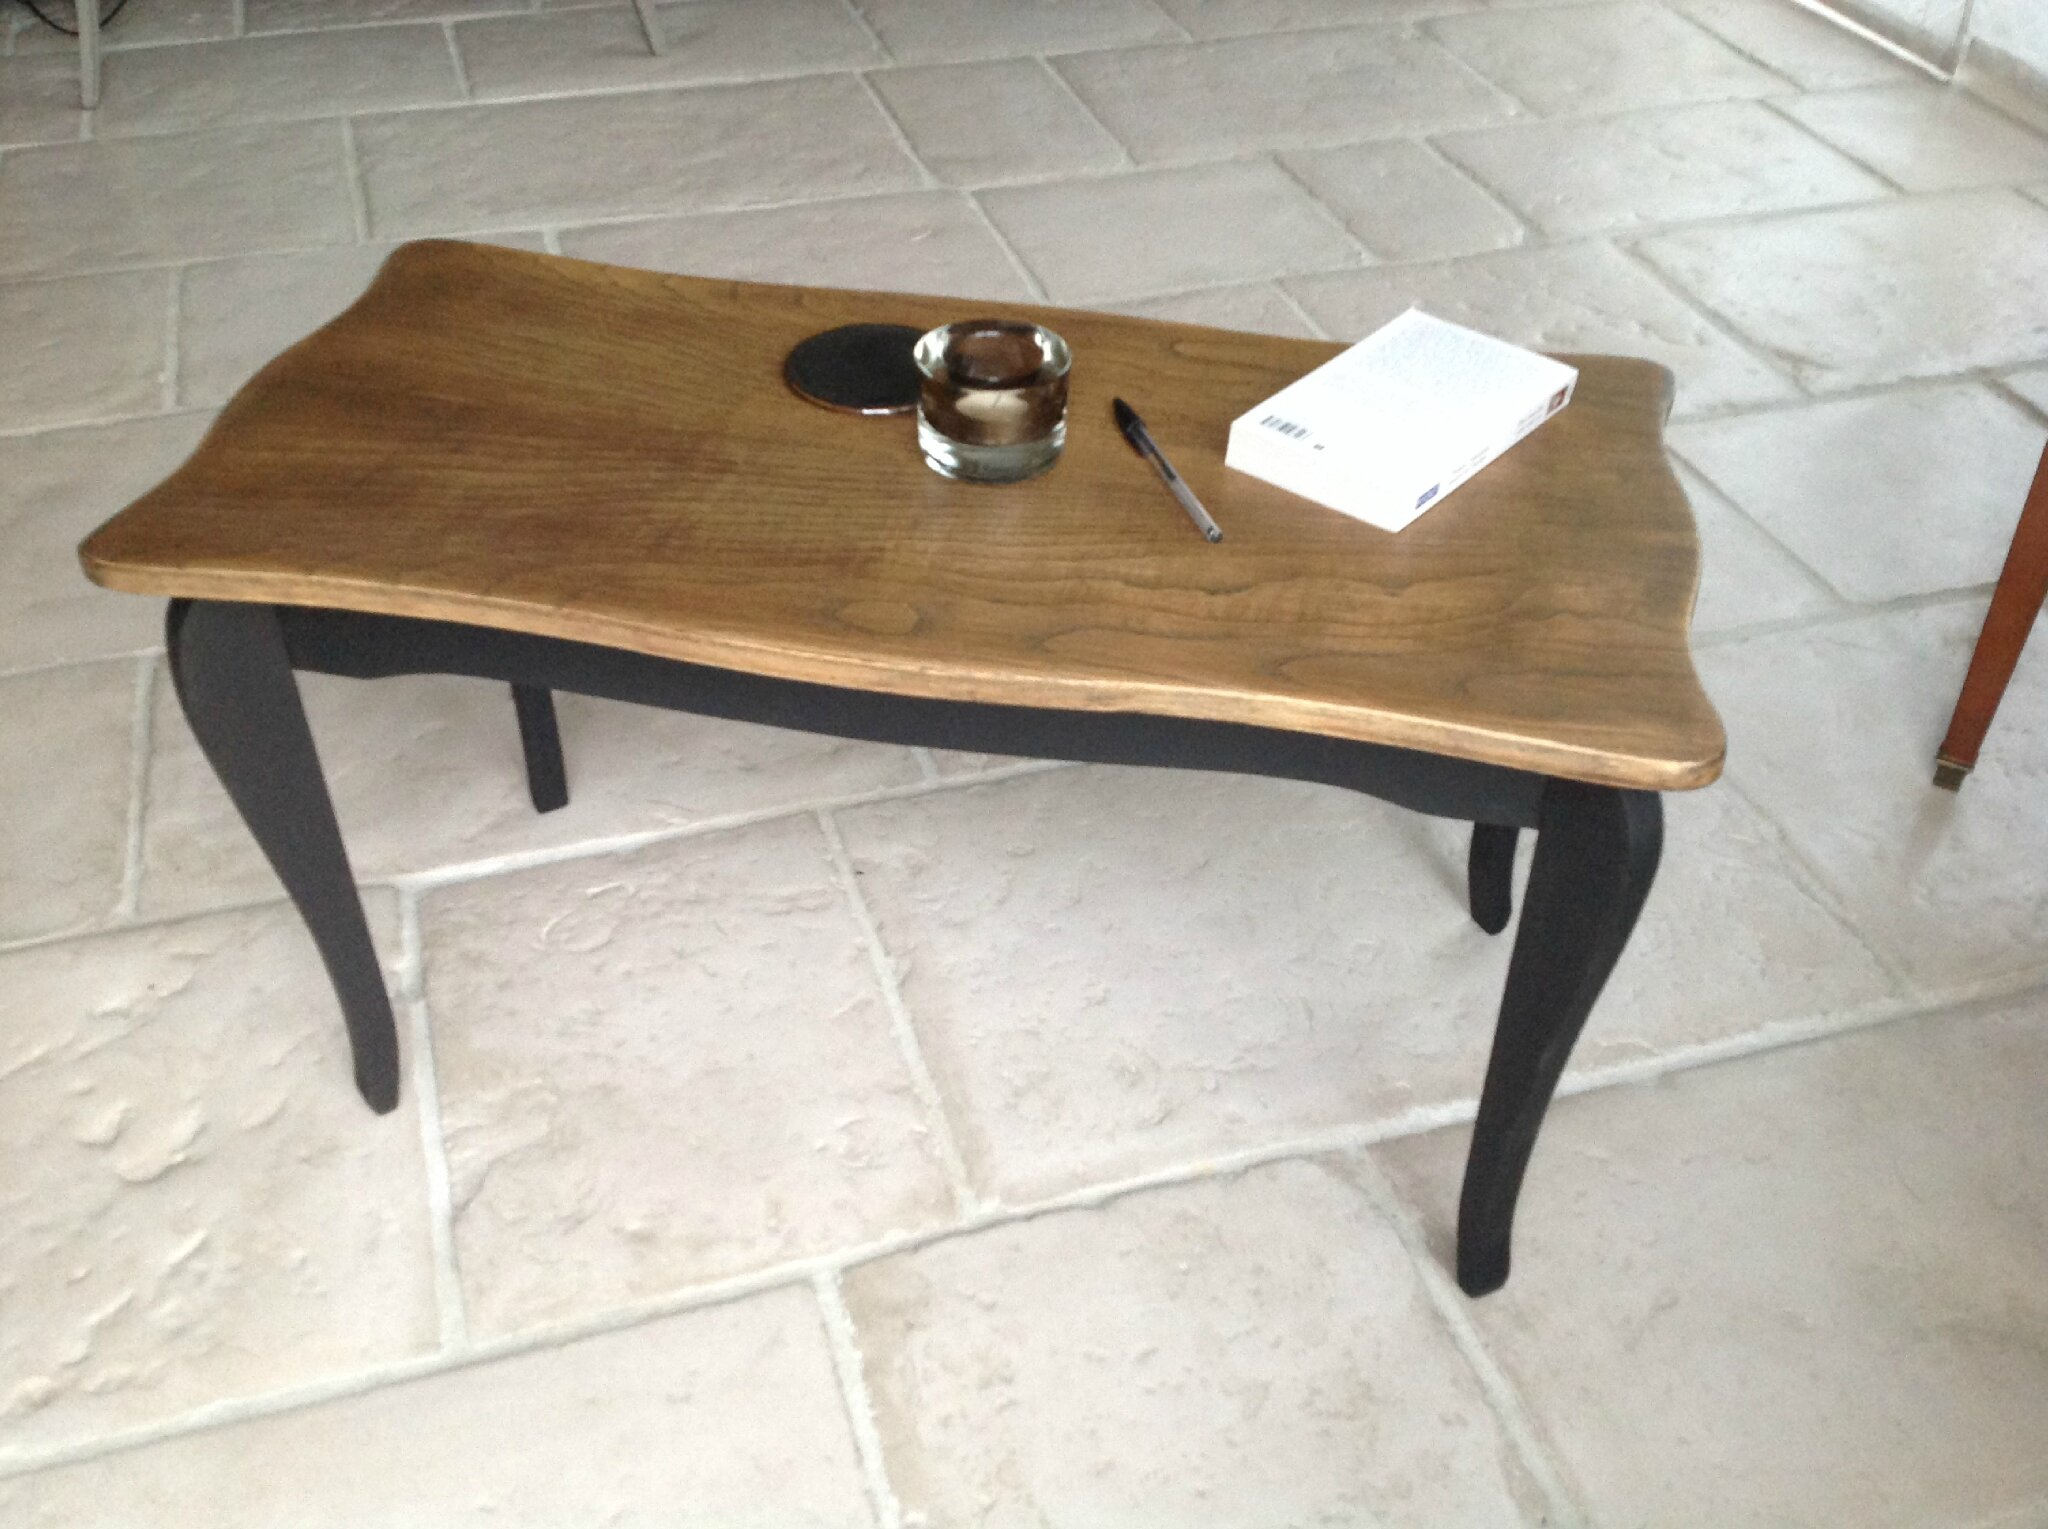 Table basse en bois double patine noir bois naturel - Table basse en bois naturel ...